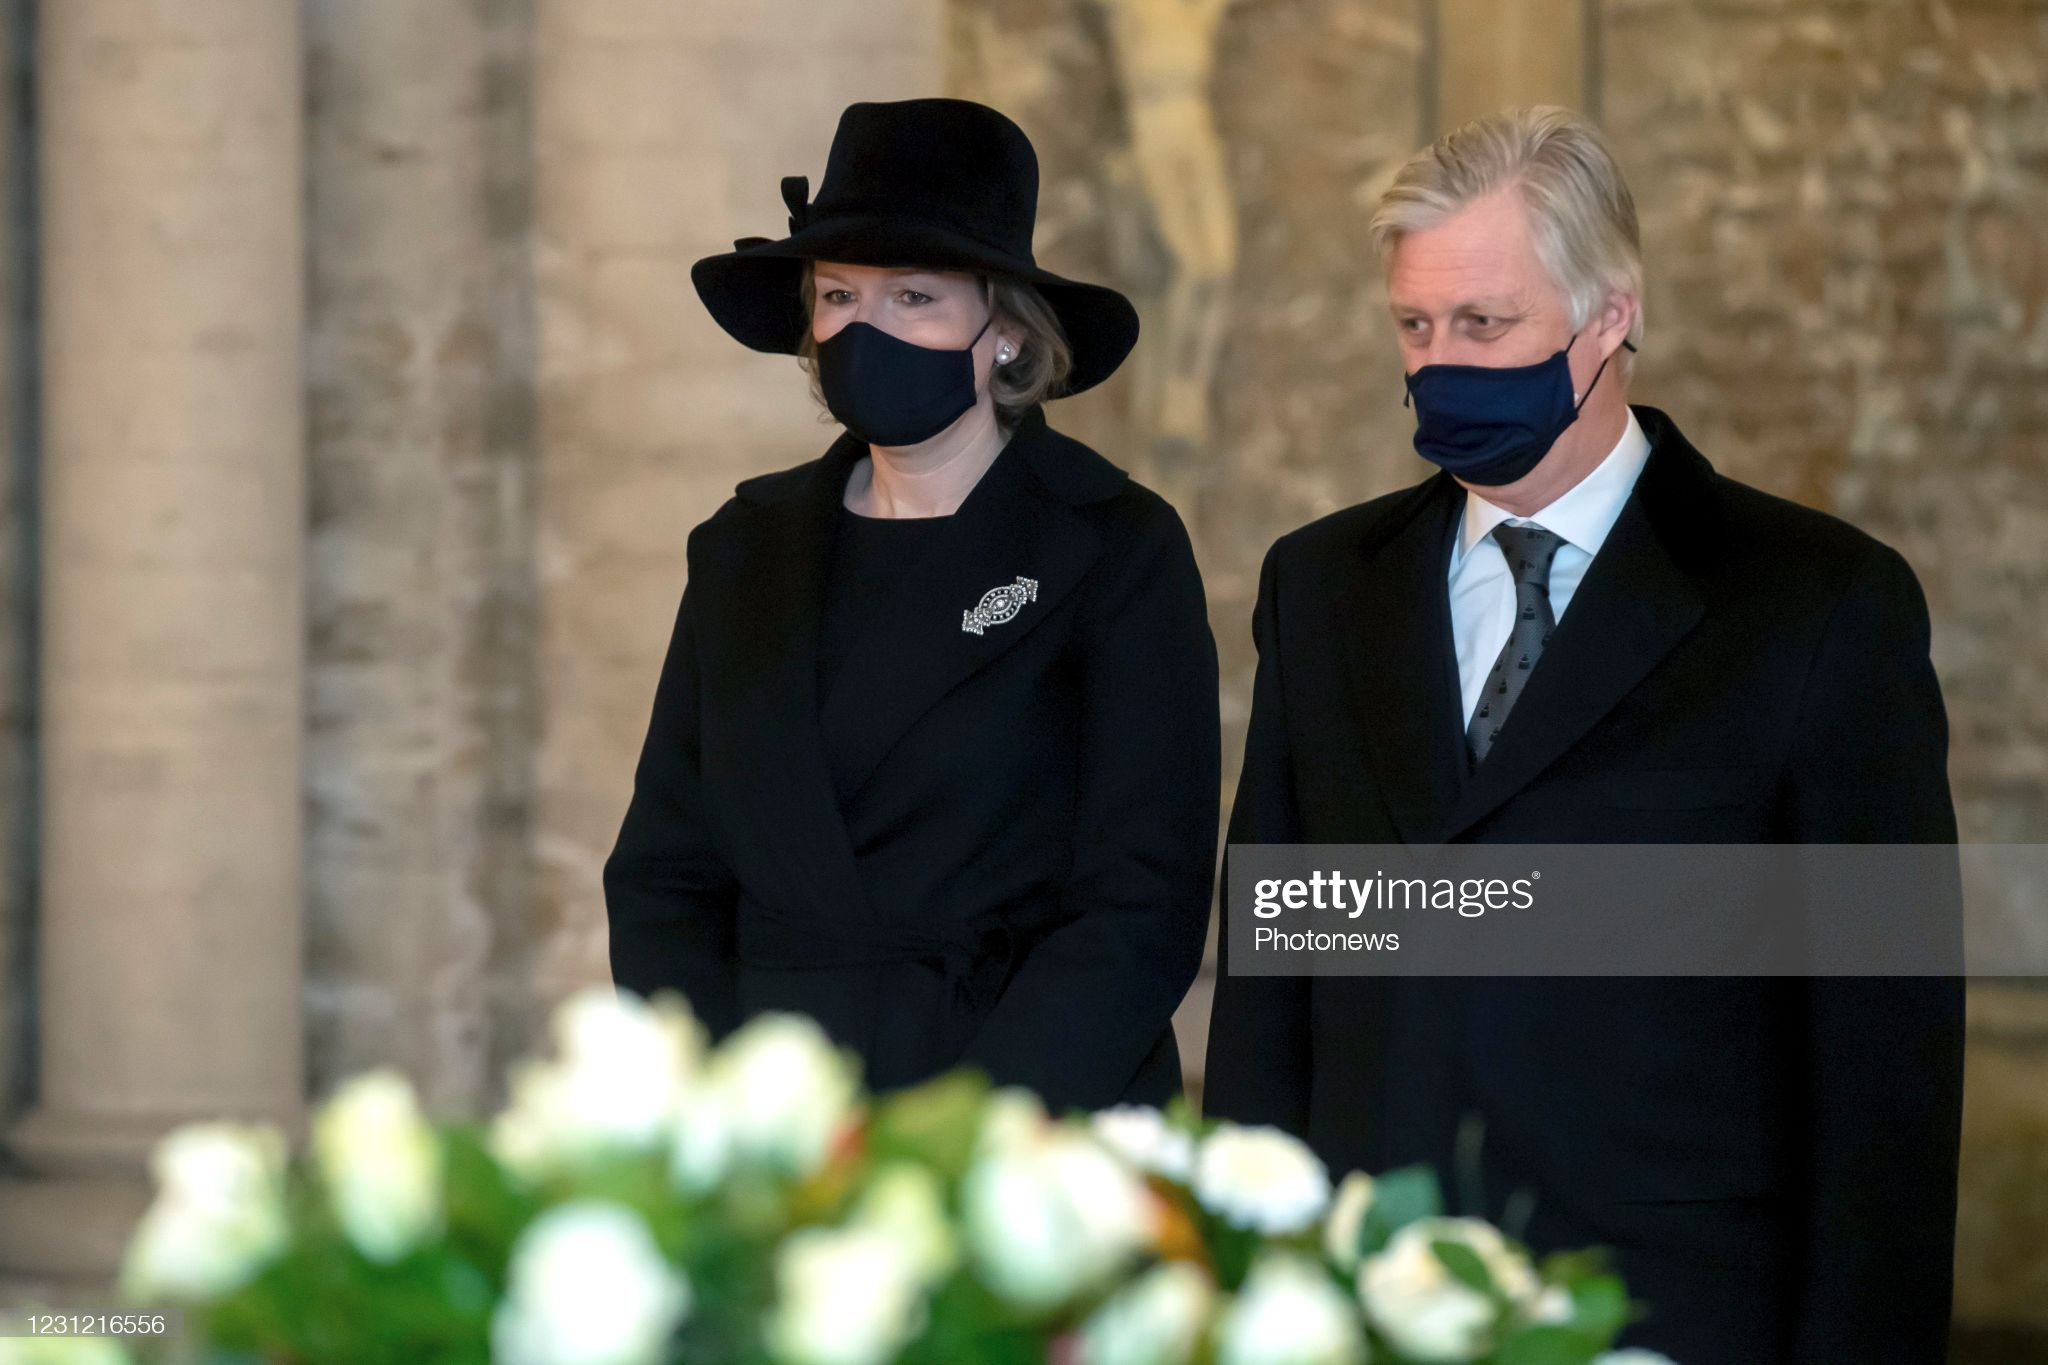 tribute-to-the-deceased-members-of-the-royal-family-at-the-royal-the-picture-id1231216556